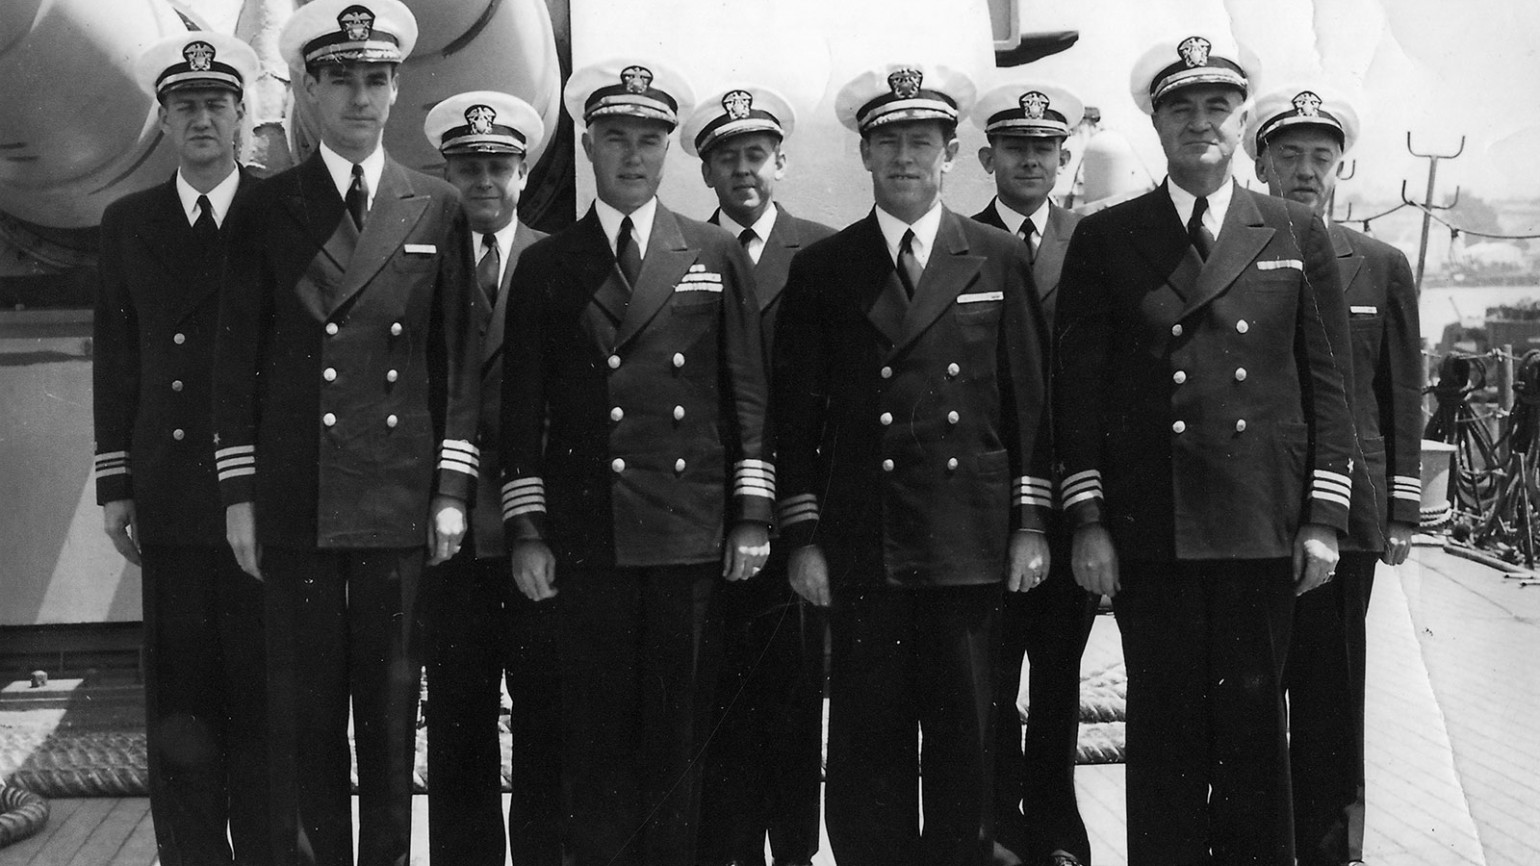 Captains in formation atop USS Indianapolis. Photo courtesy of Alfred J. Sedivi Collection - USNI.